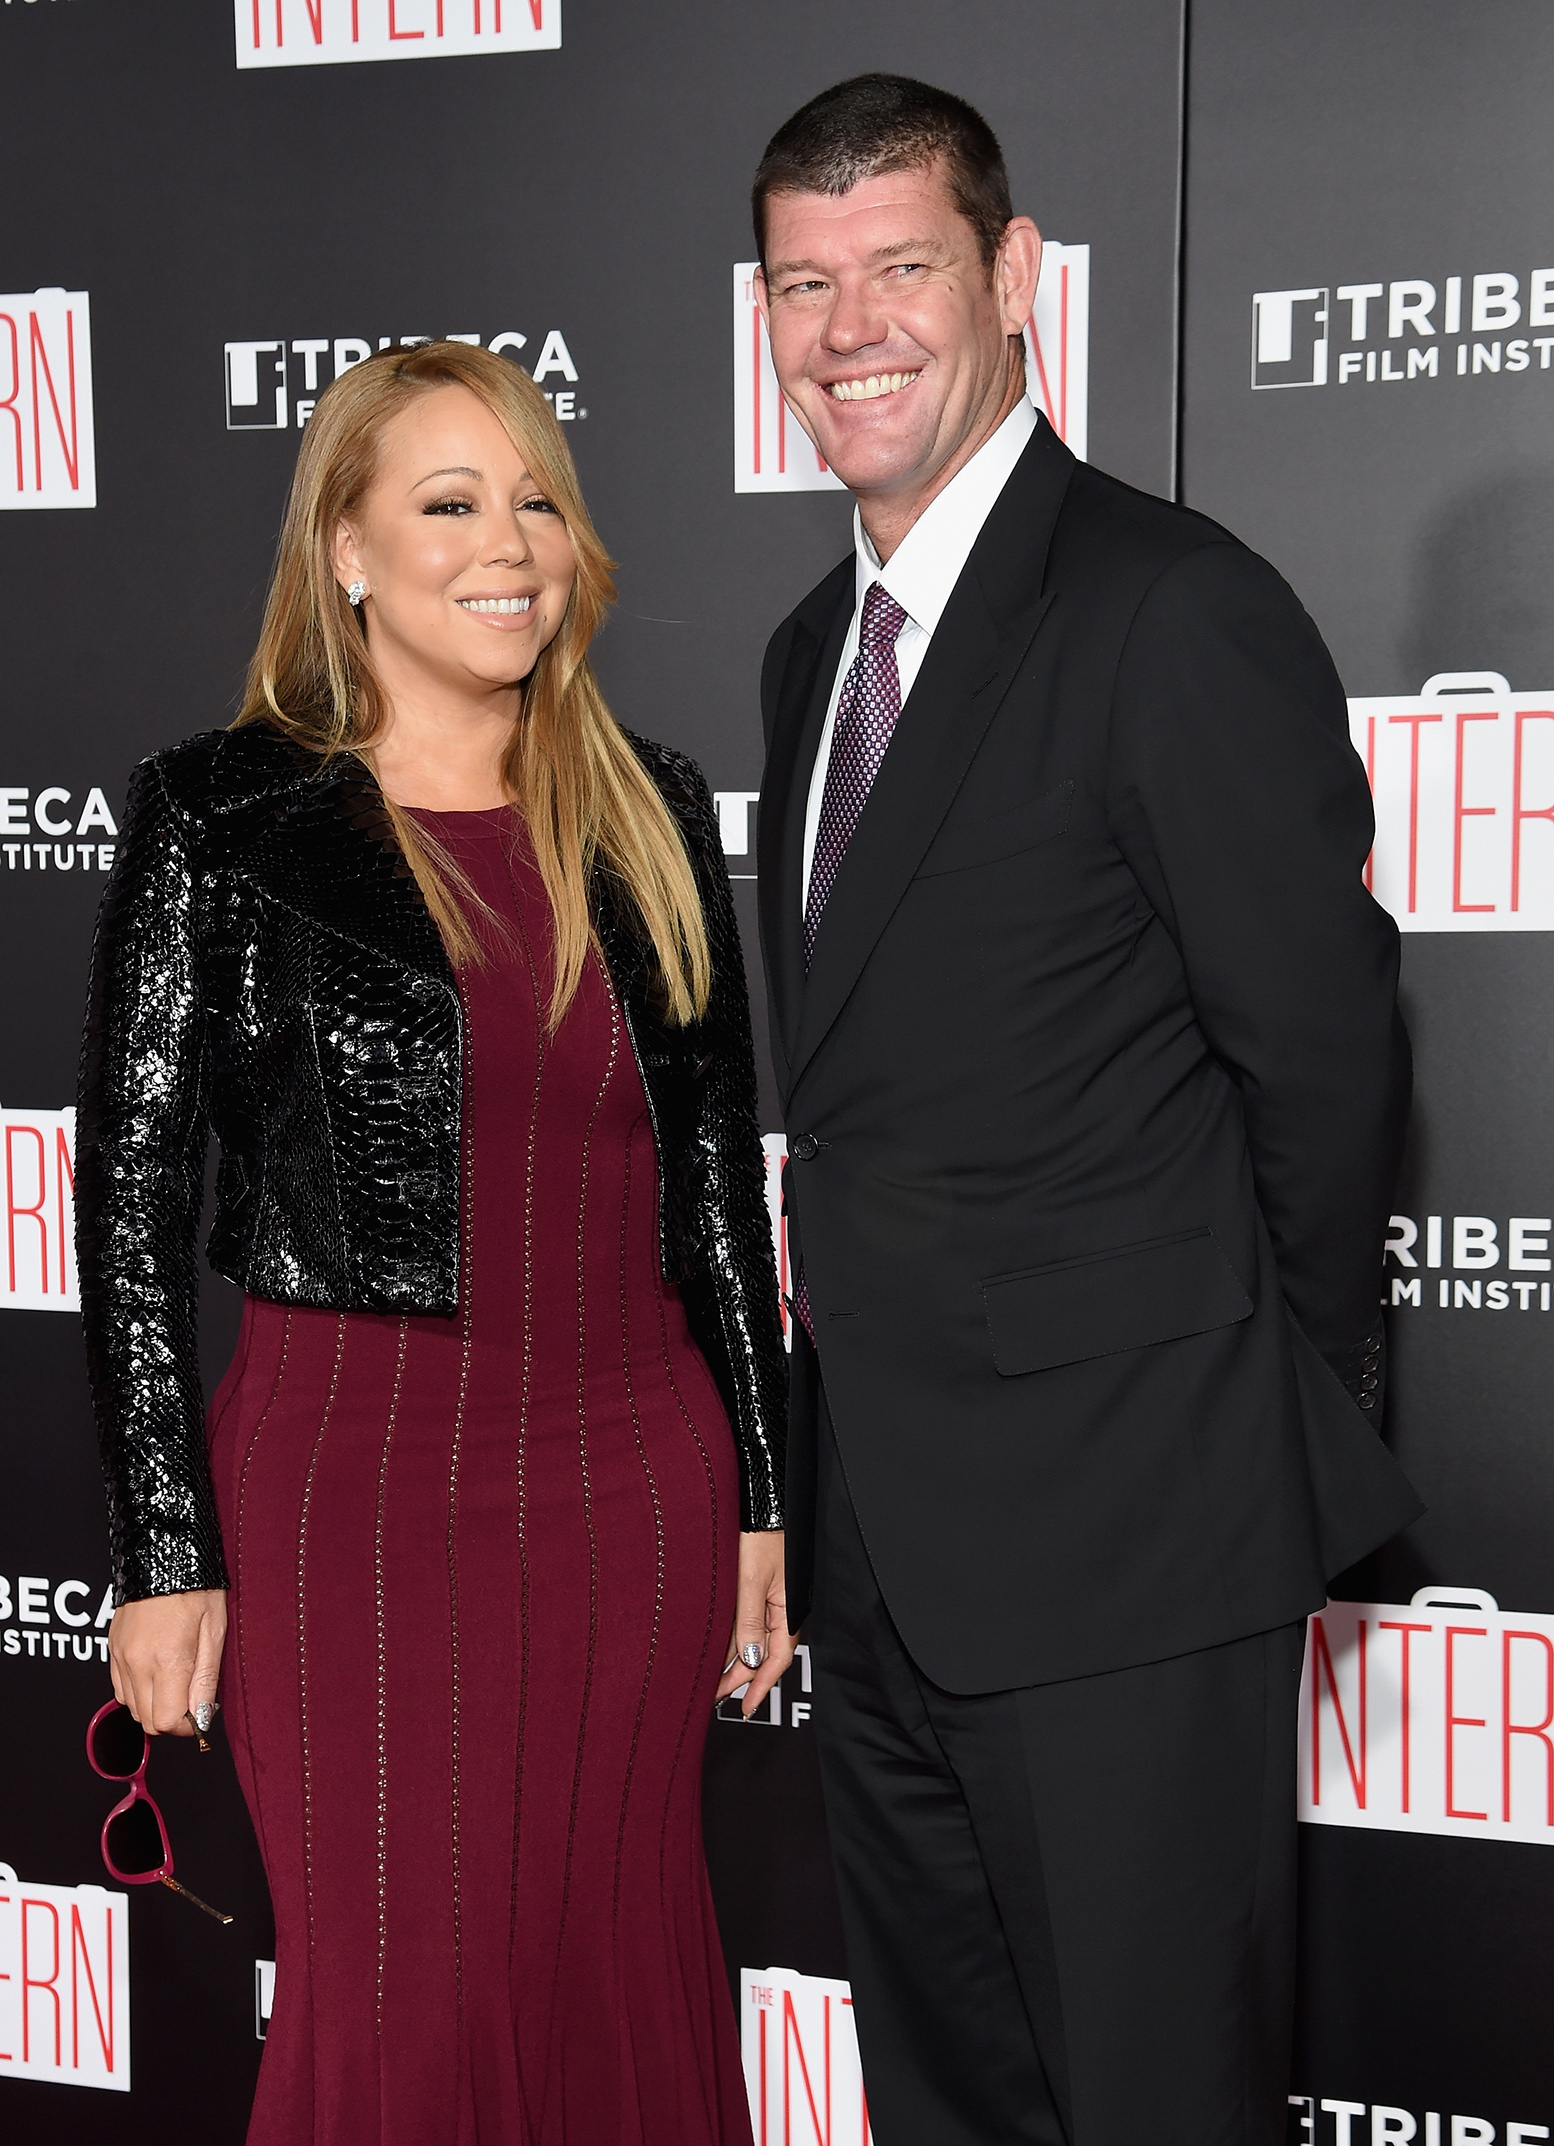 Mariah Carey and fiance James Packer